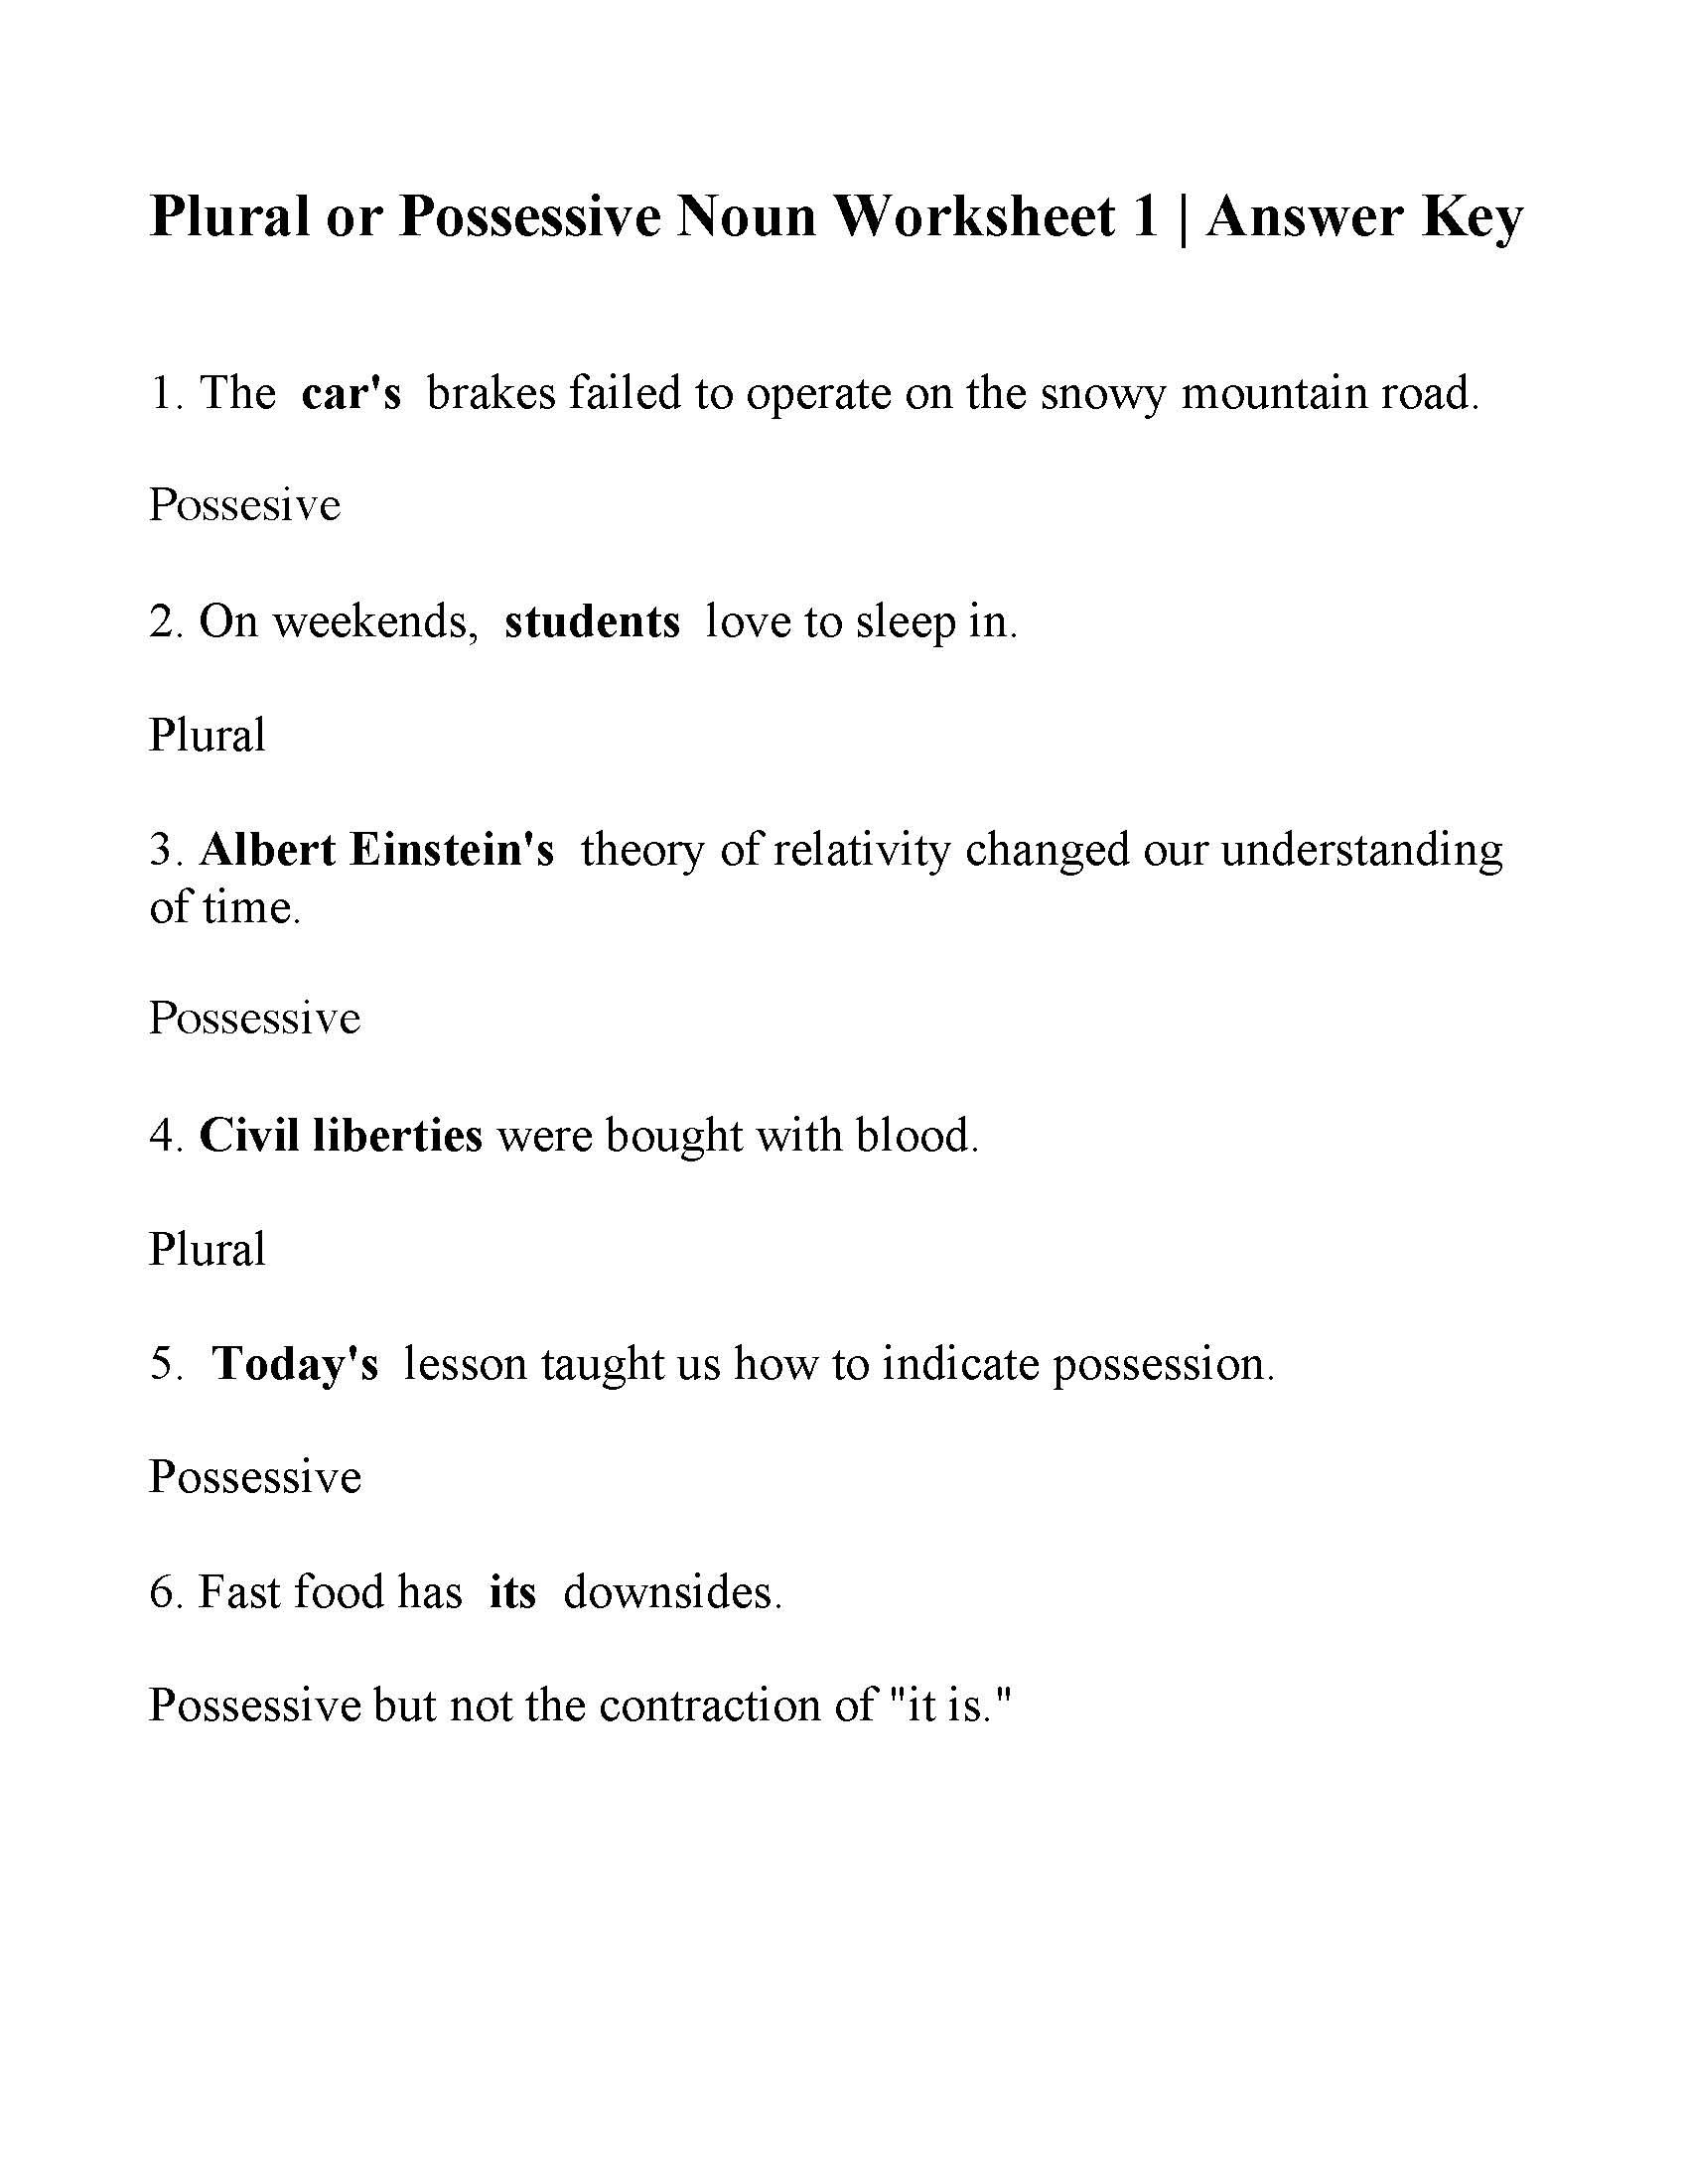 Plural Or Possessive Noun Worksheet Answers Turtle diary's noun worksheets are a good tool for practicing this part of speech. plural or possessive noun worksheet